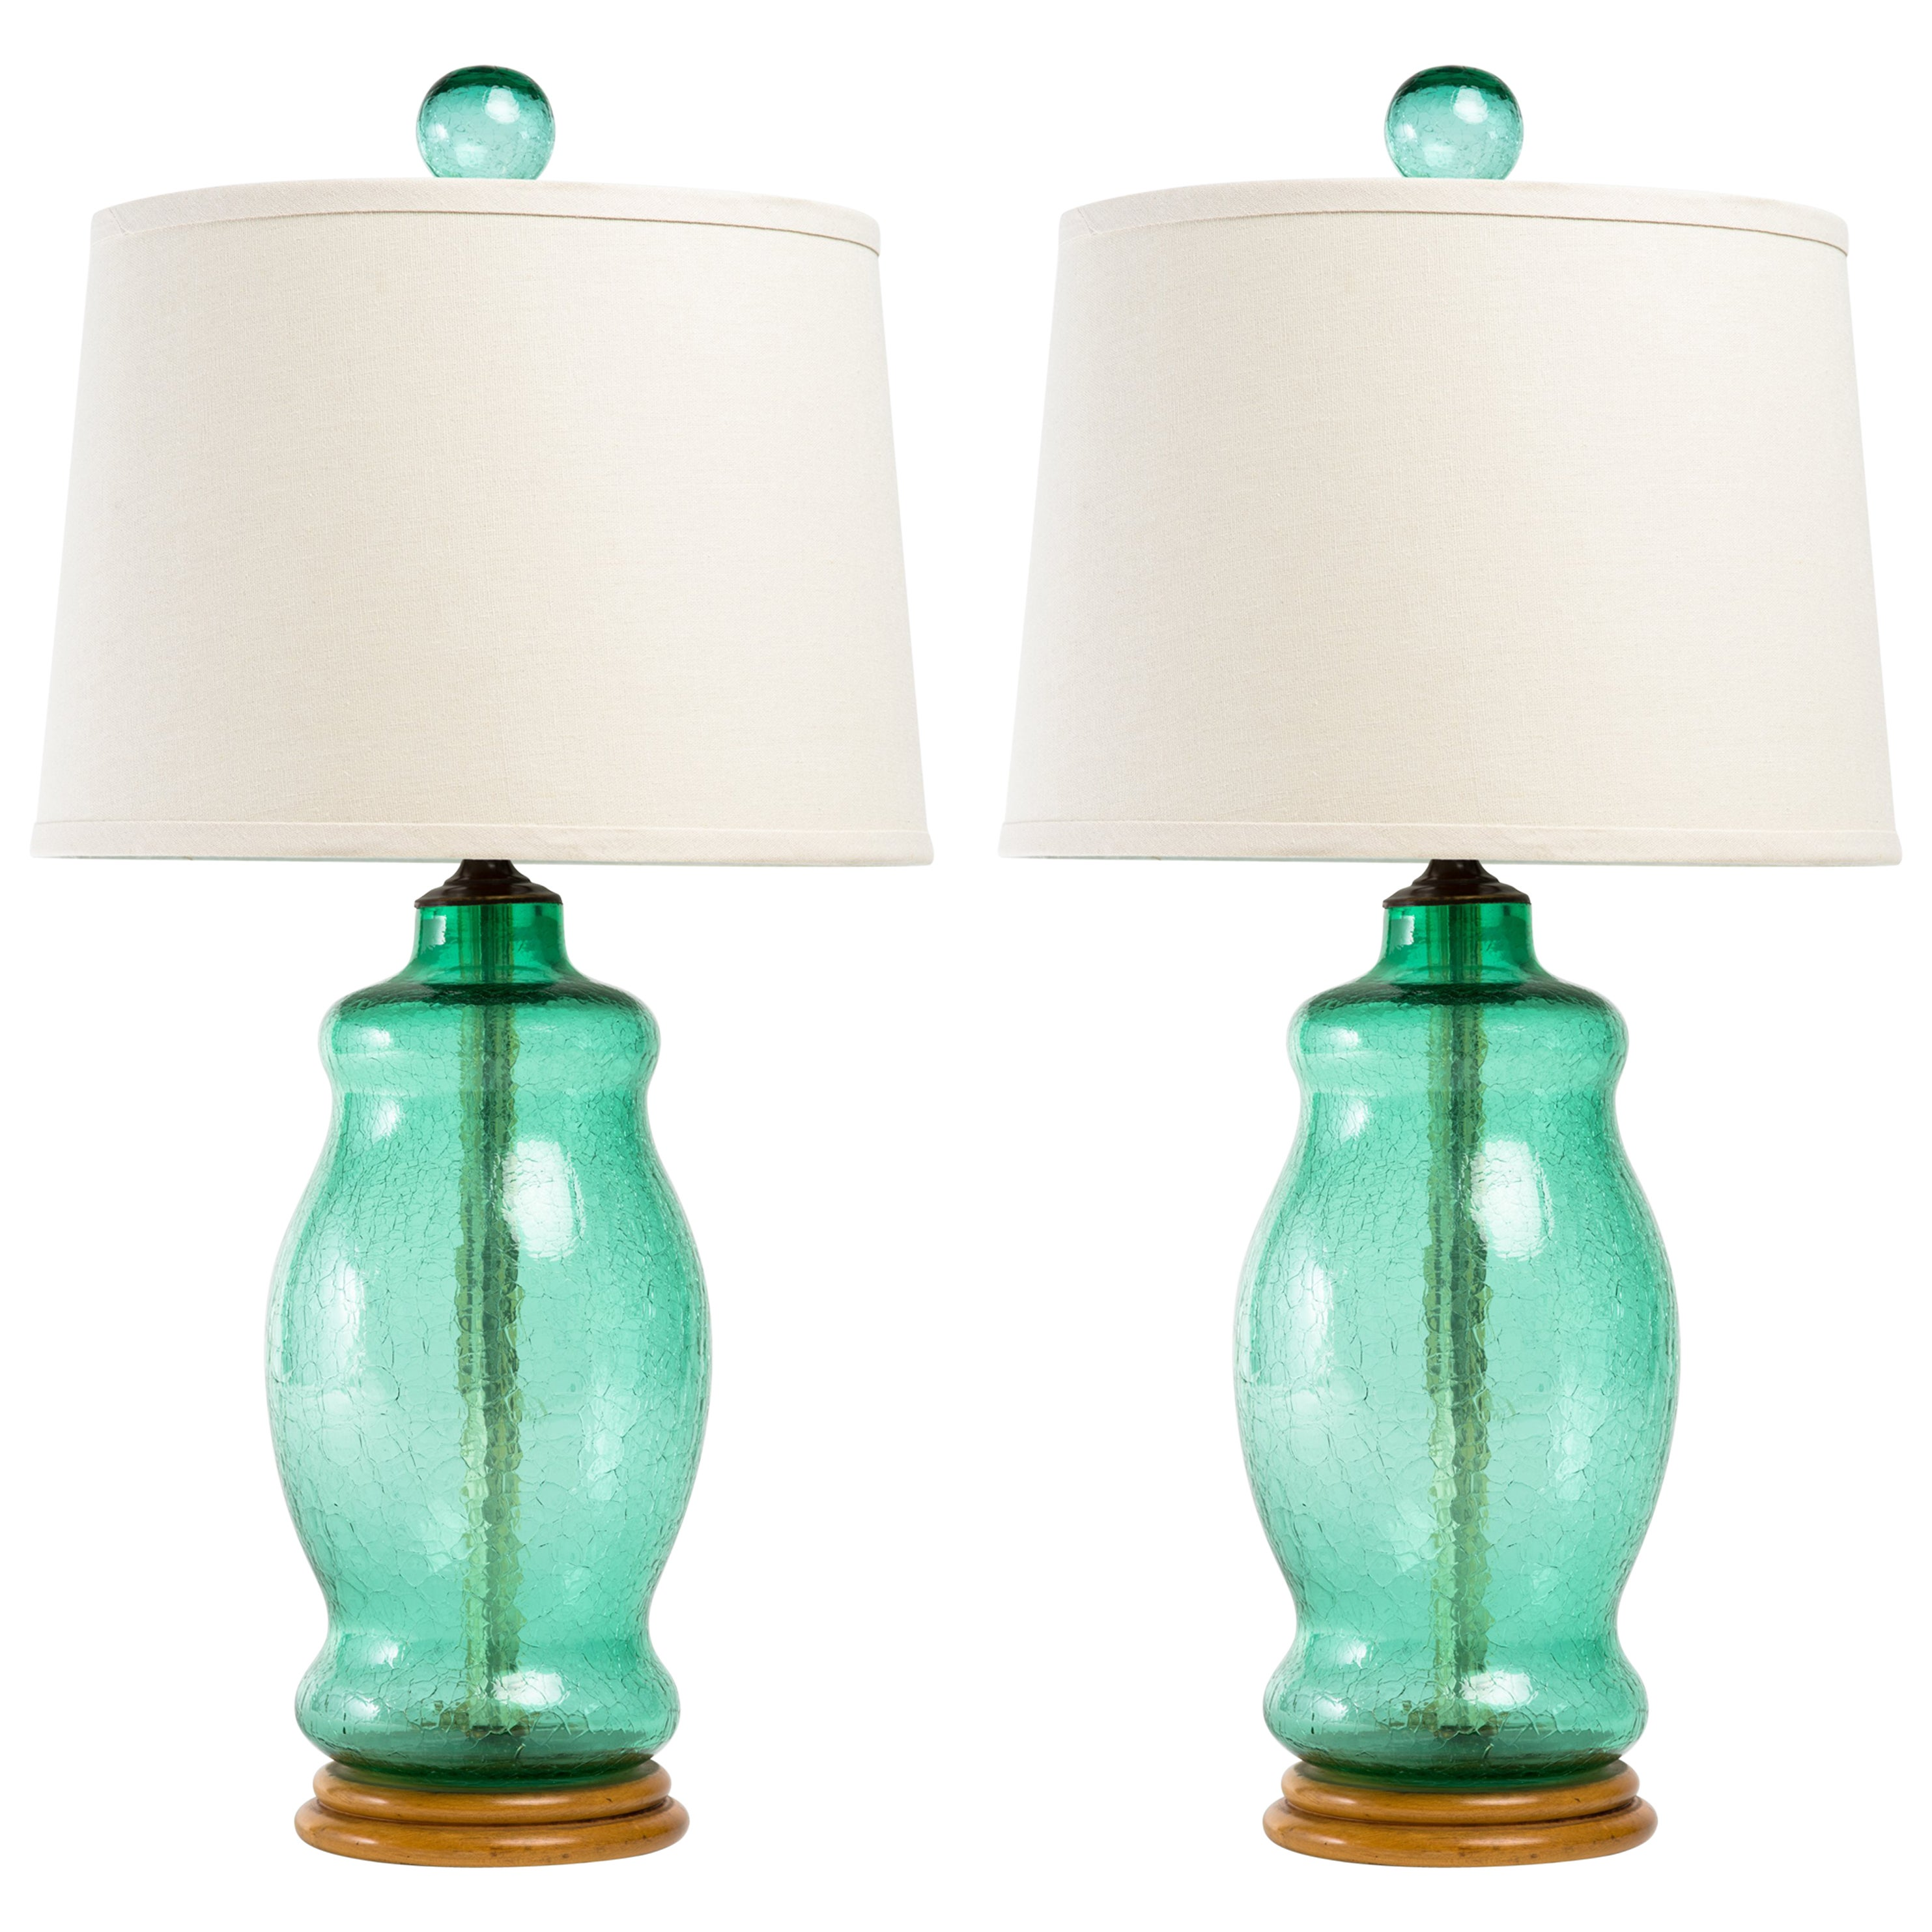 Glass Crackle Lamp Pair Of Blenko 1950s Green Crackle Glass Lamps